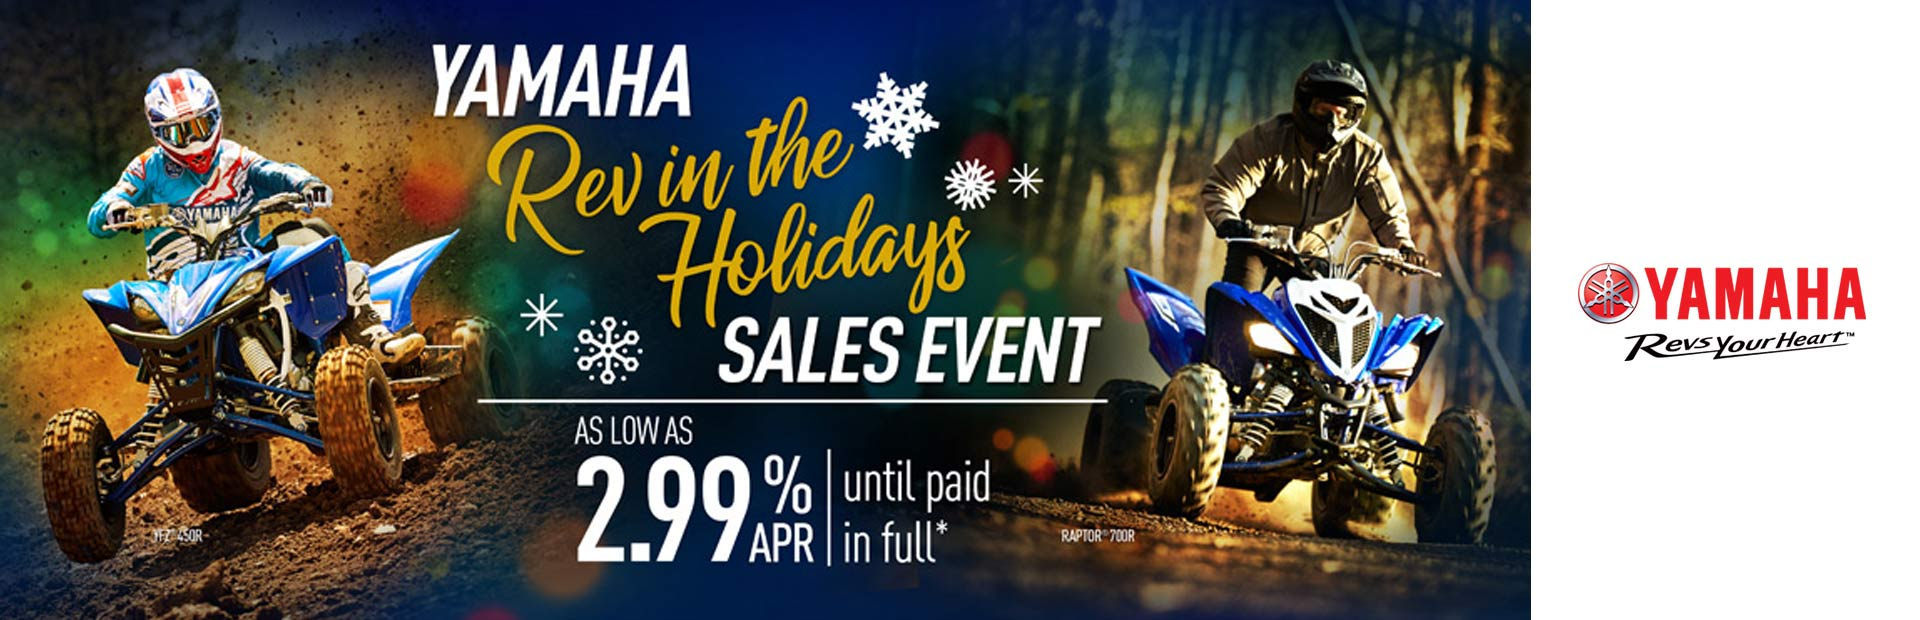 Yamaha: Rev in the Holidays Sales Event (Sport ATV)